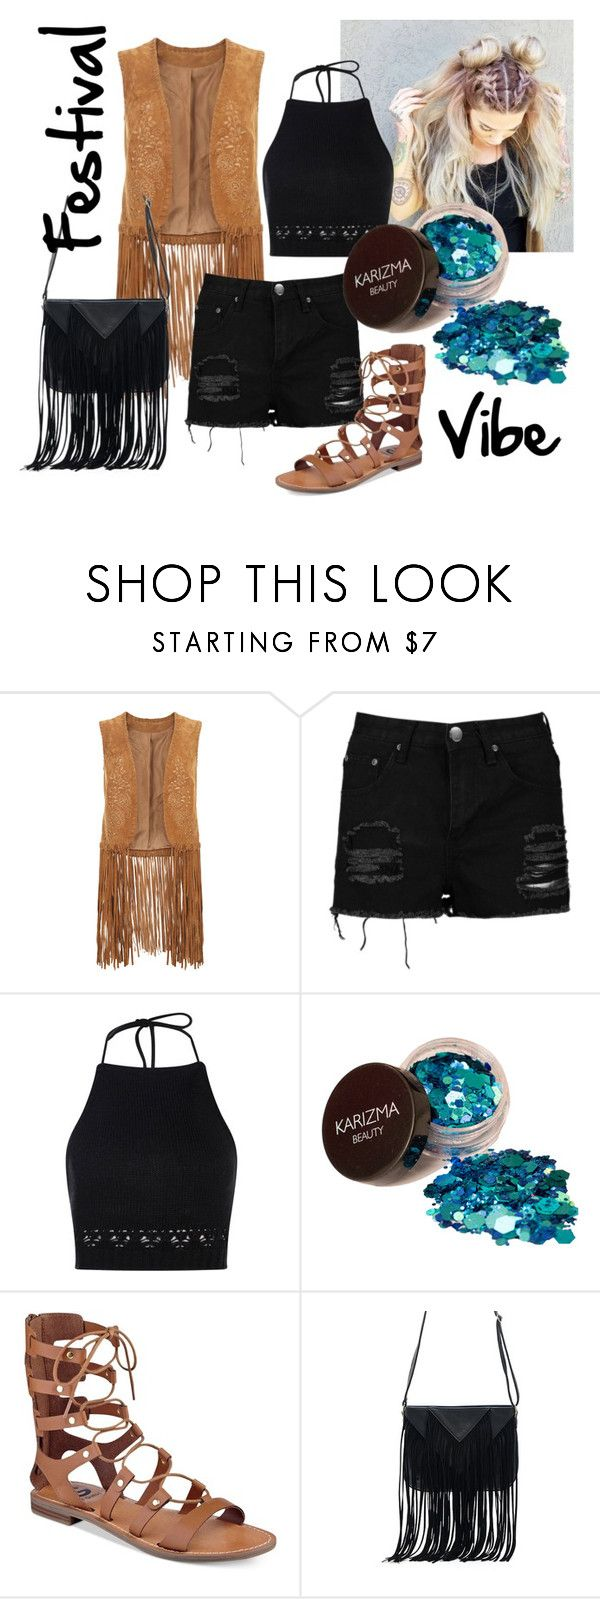 Let the Festival season begin by patsilvarte-blog on Polyvore featuring Boohoo, Monsoon, G by Guess and WithChic  #festival #ootd #outfit #fringe #coachella